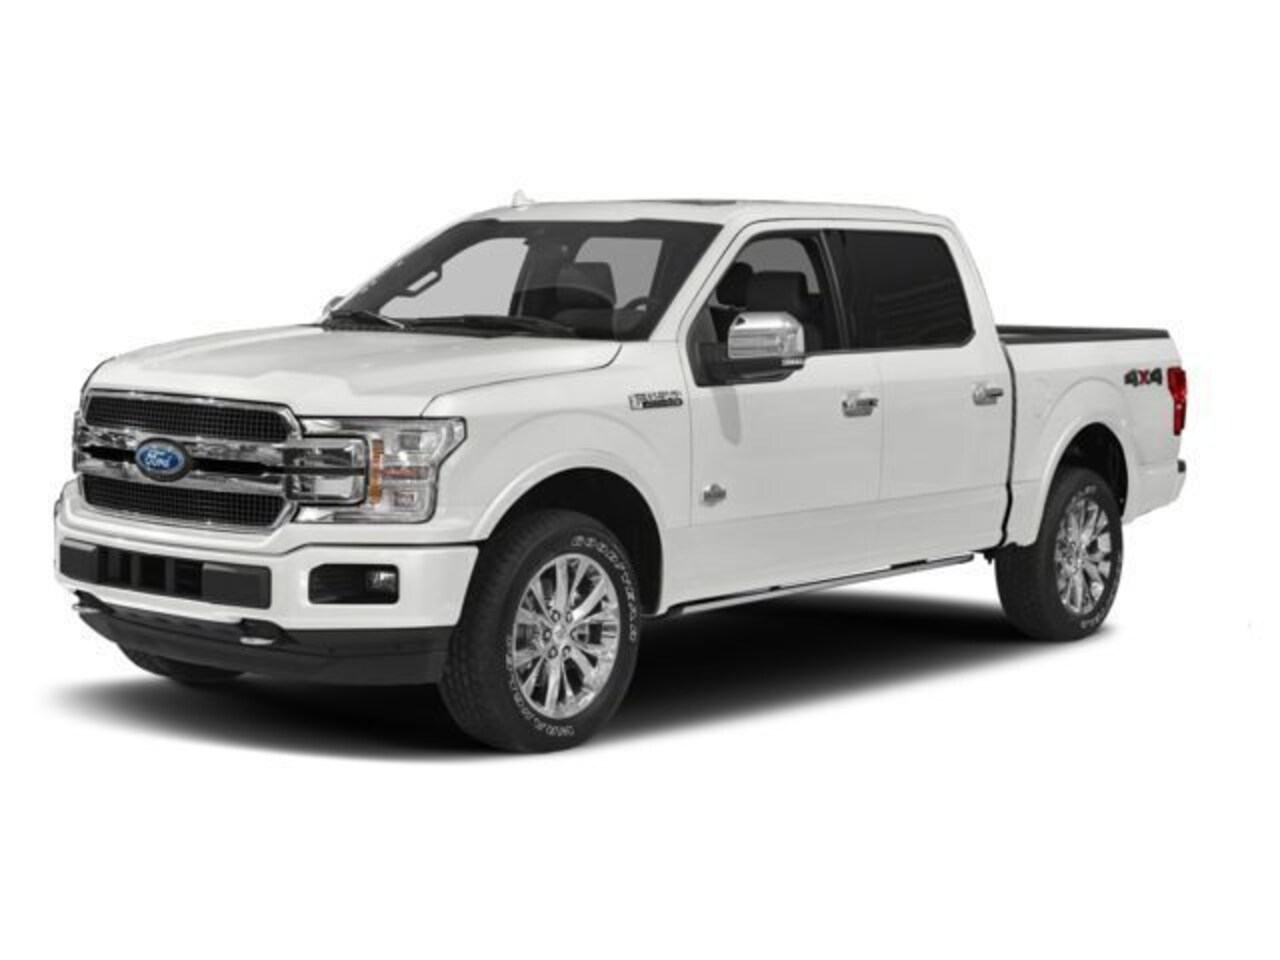 2018 Ford F-150 XLT 302A 4X4 3.5L ECOBOOST 10 SPEED SPORT NAV Crew Cab Short Bed Truck